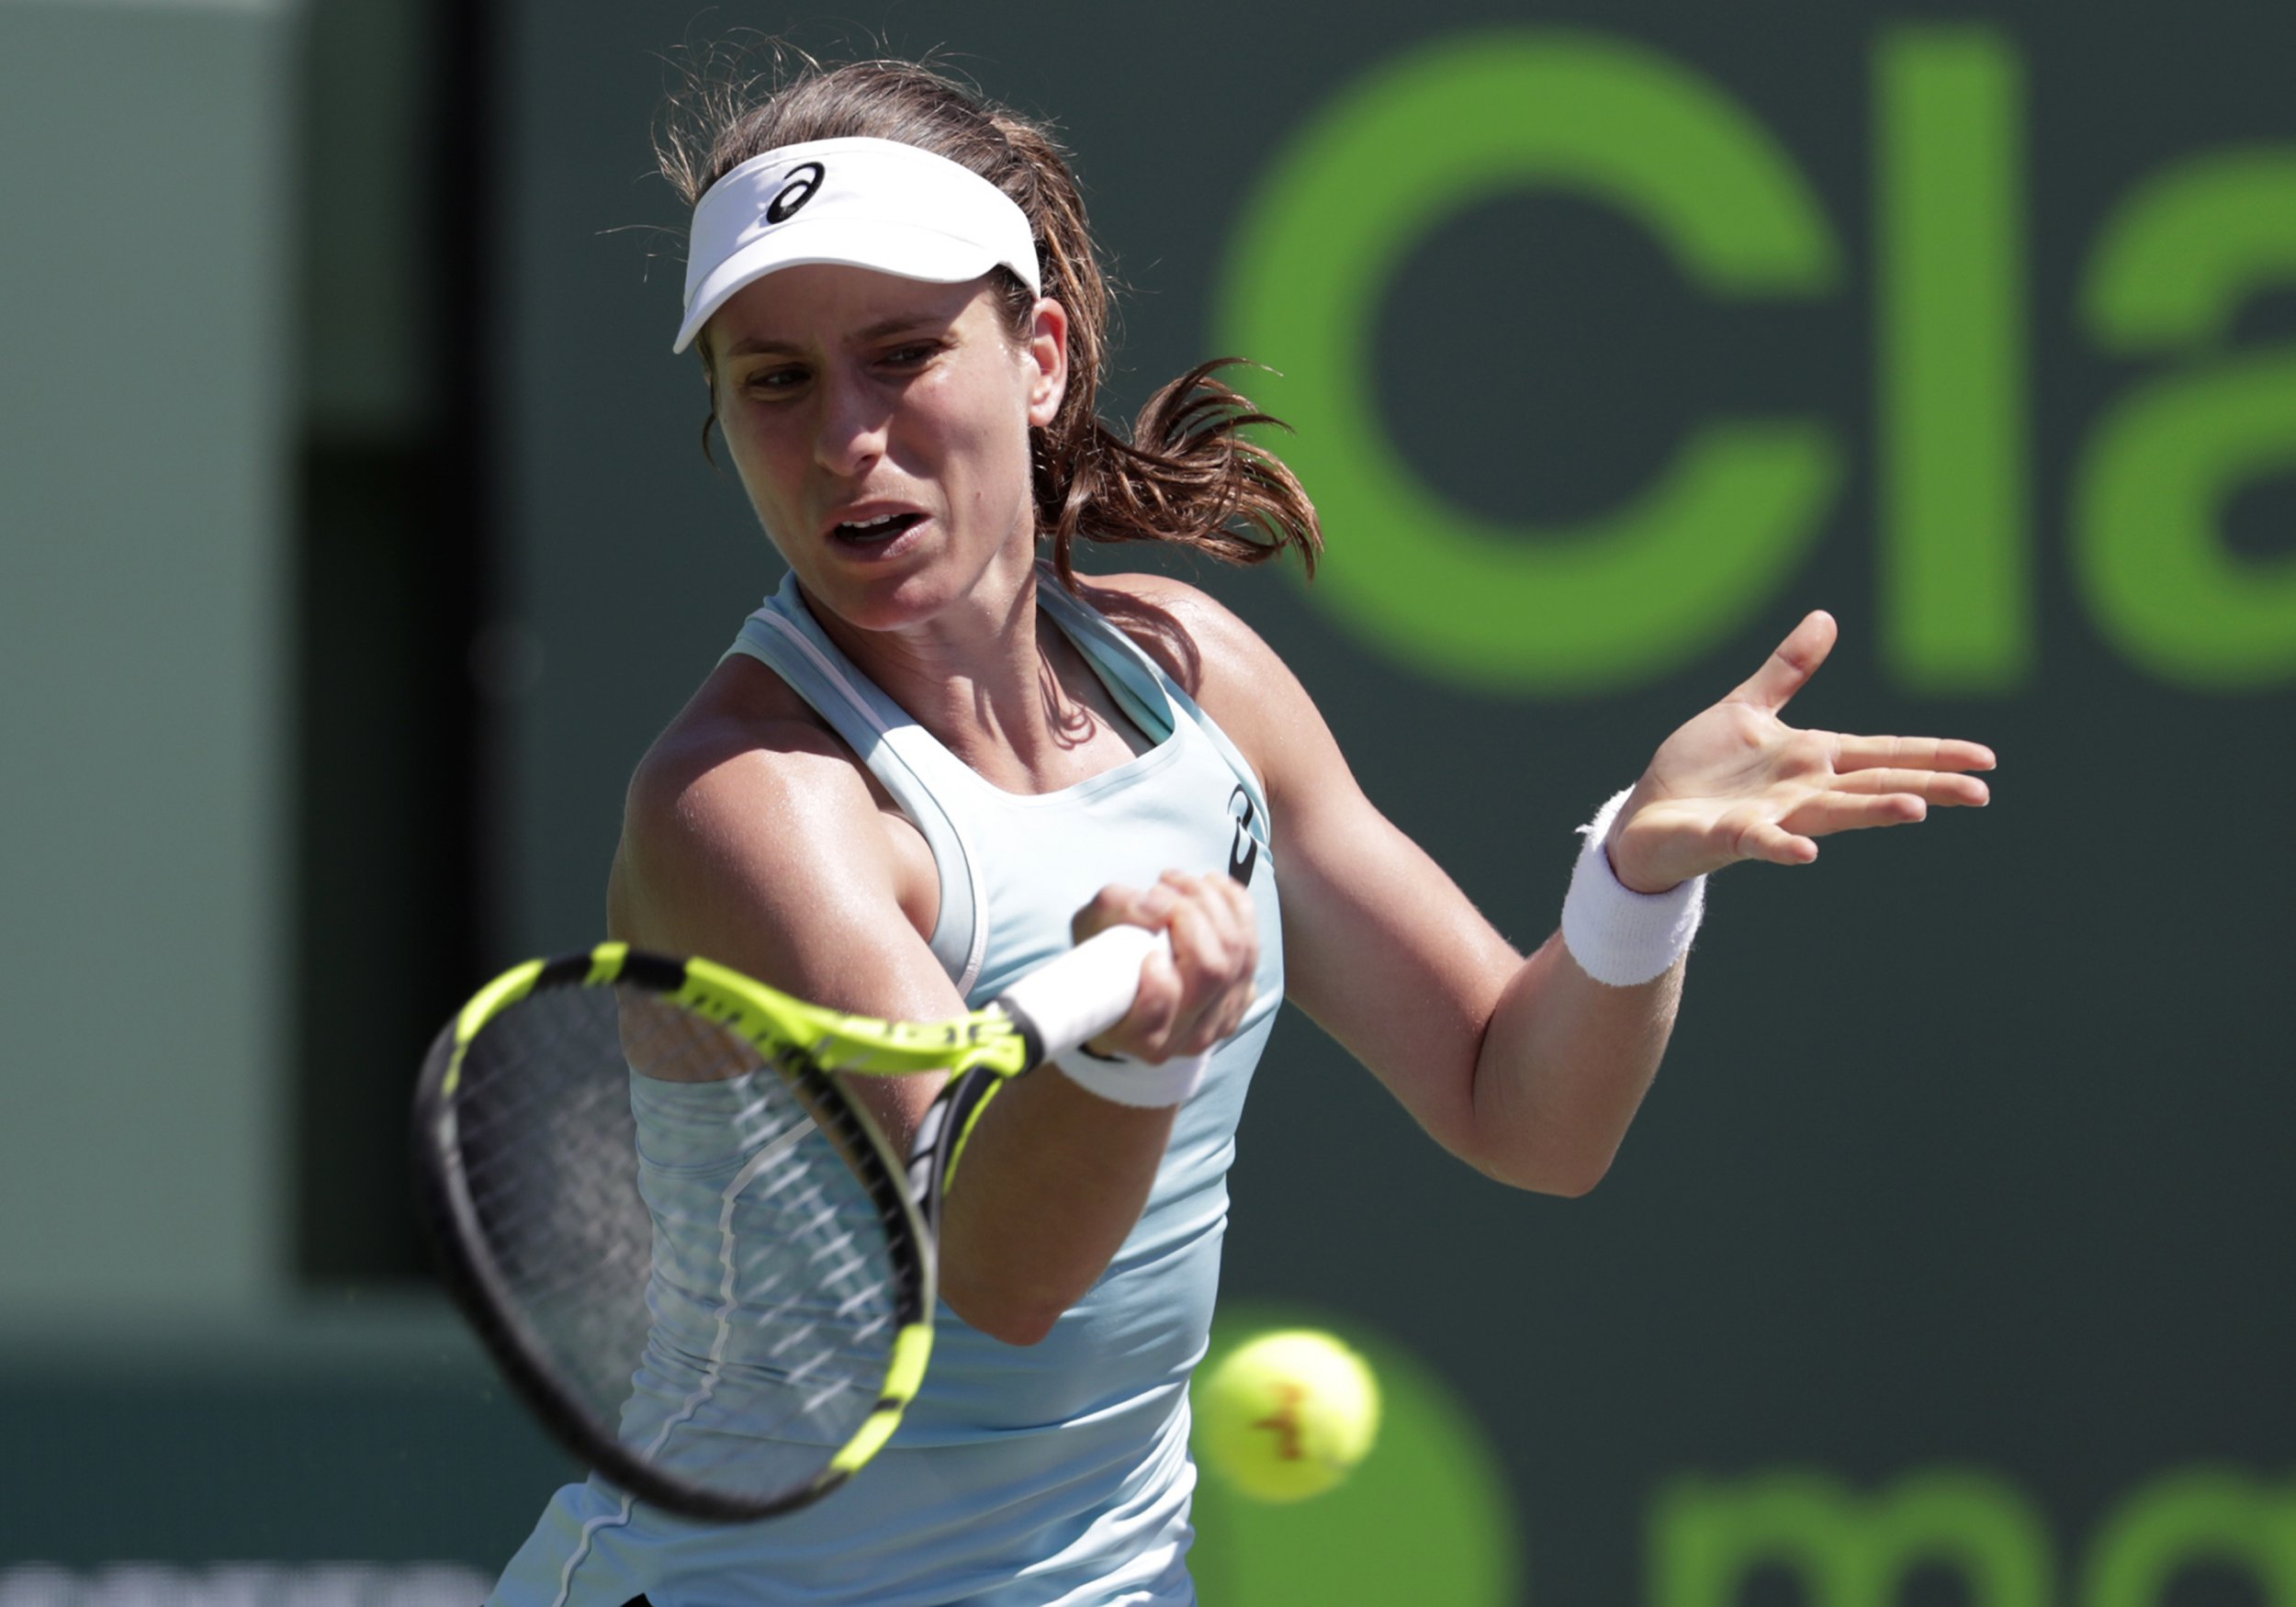 Johanna Konta, of Great Britain, returns to Elise Mertens, of Belgium, during the Miami Open tennis tournament, Sunday, March 25, 2018, in Key Biscayne, Fla. (AP Photo/Lynne Sladky)